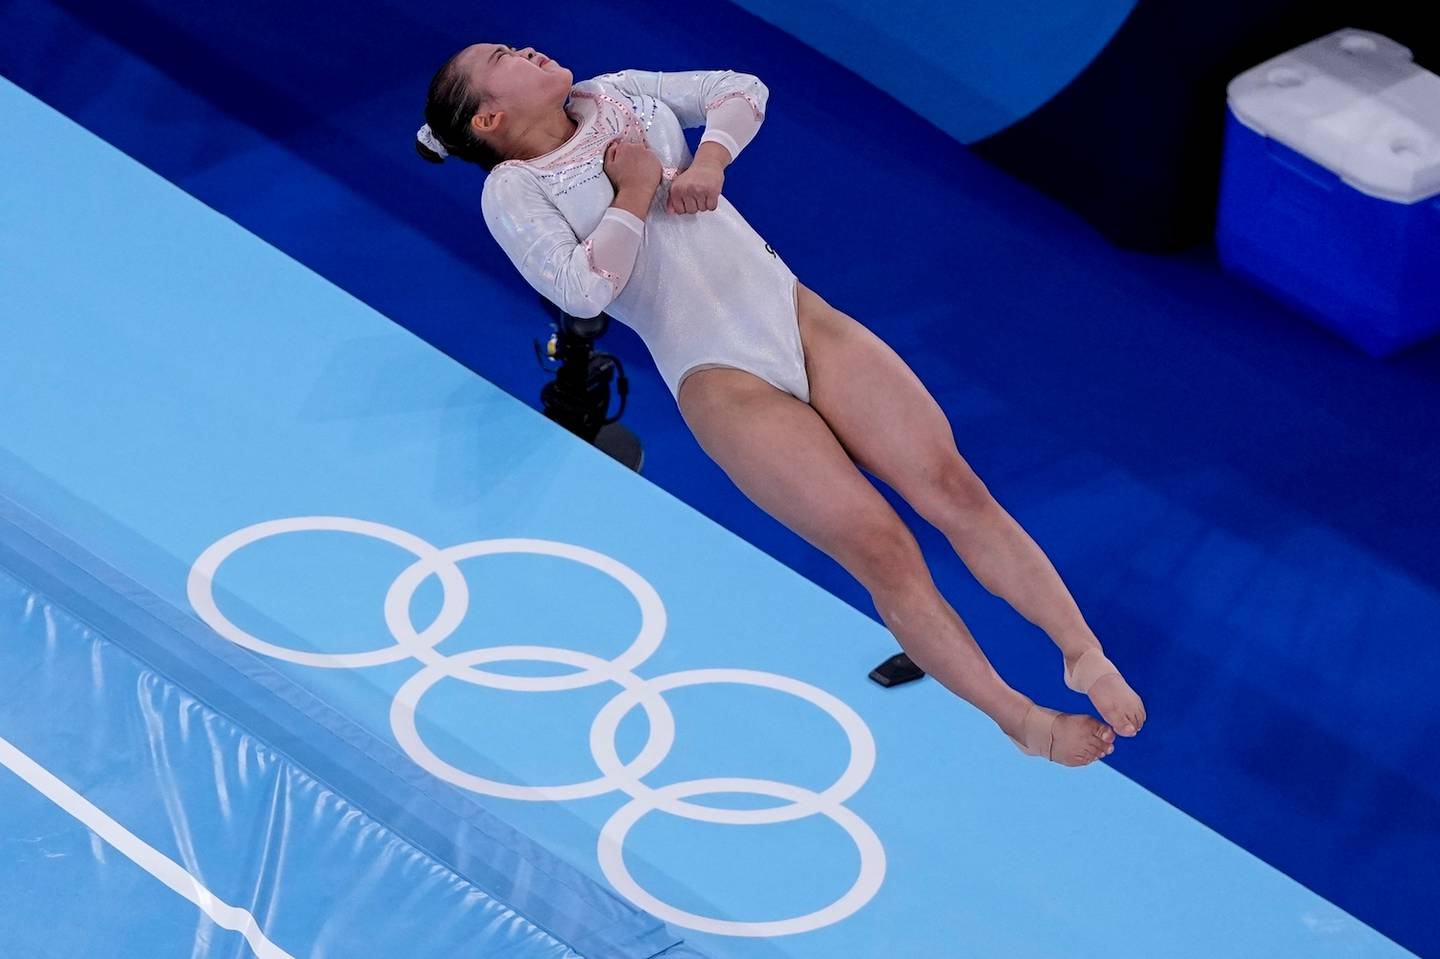 Yeo Seo-jeong, of South Korea, performs on the vault. Photo / AP